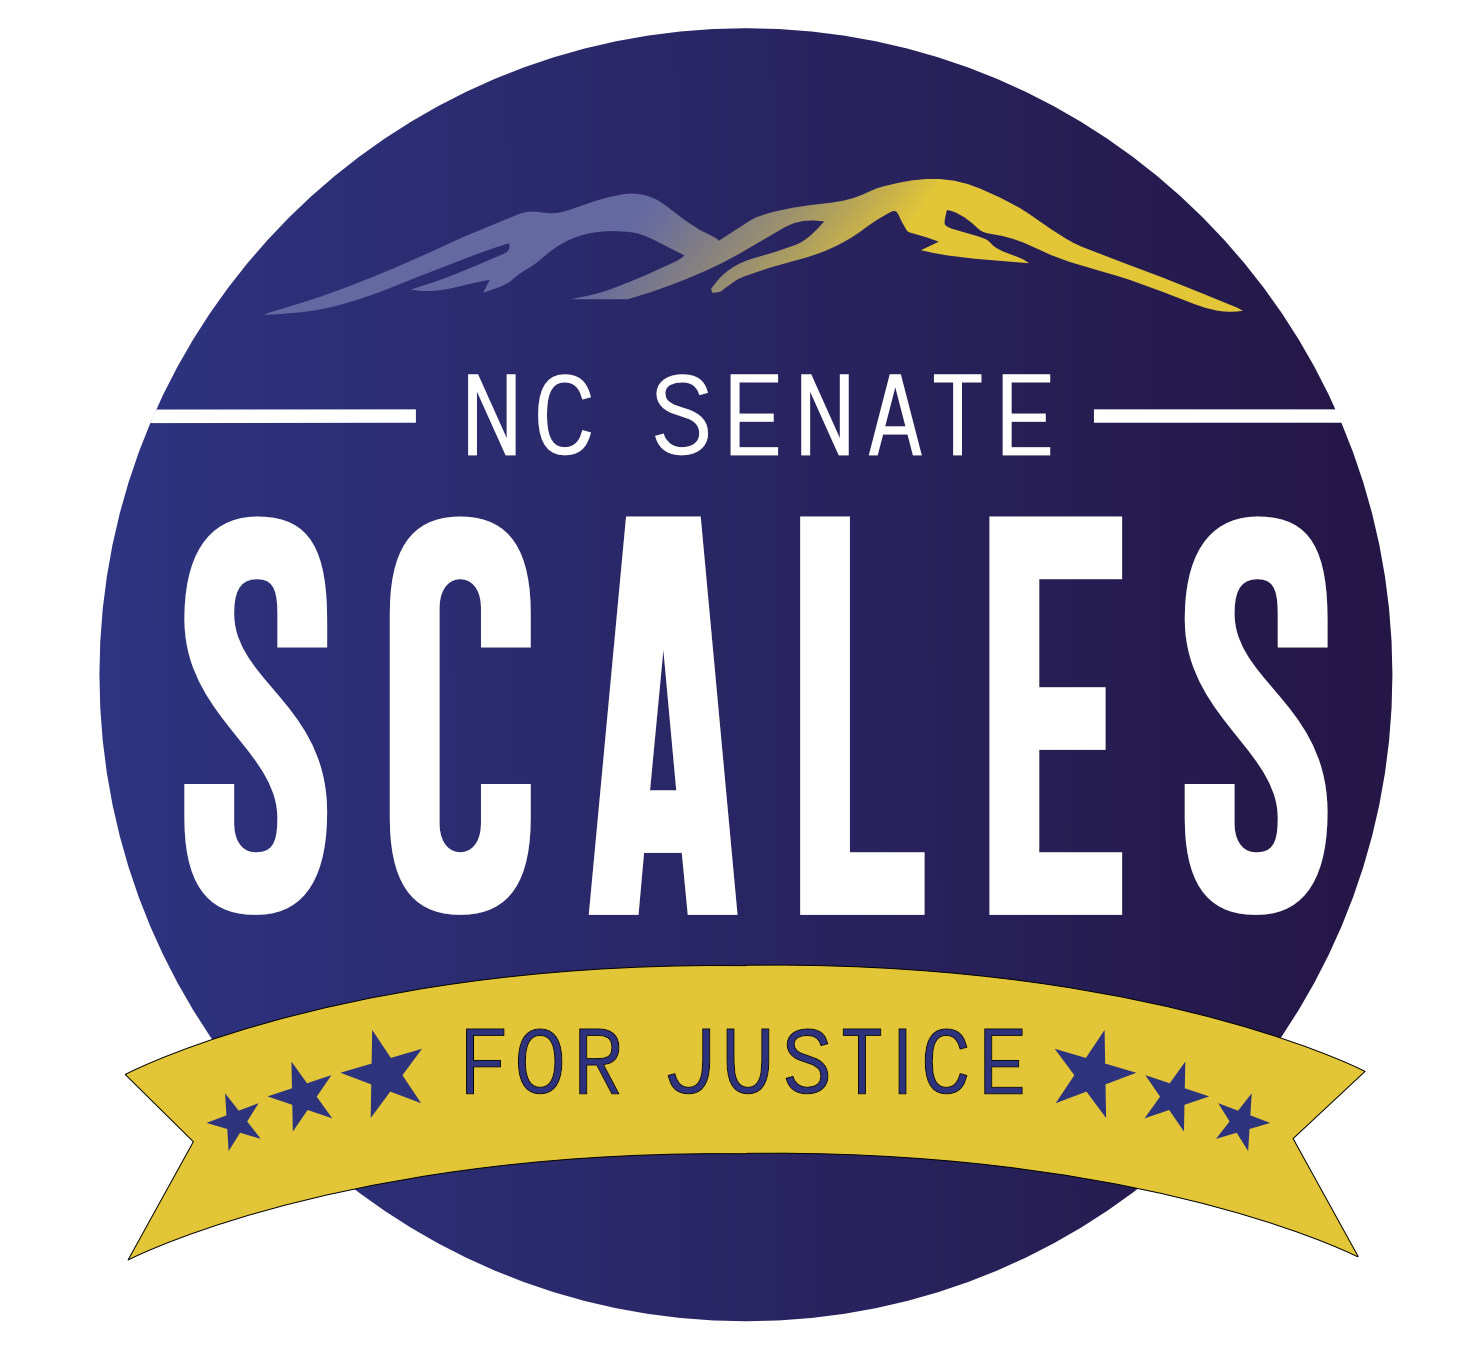 Ben Scales for NC Senate District 49